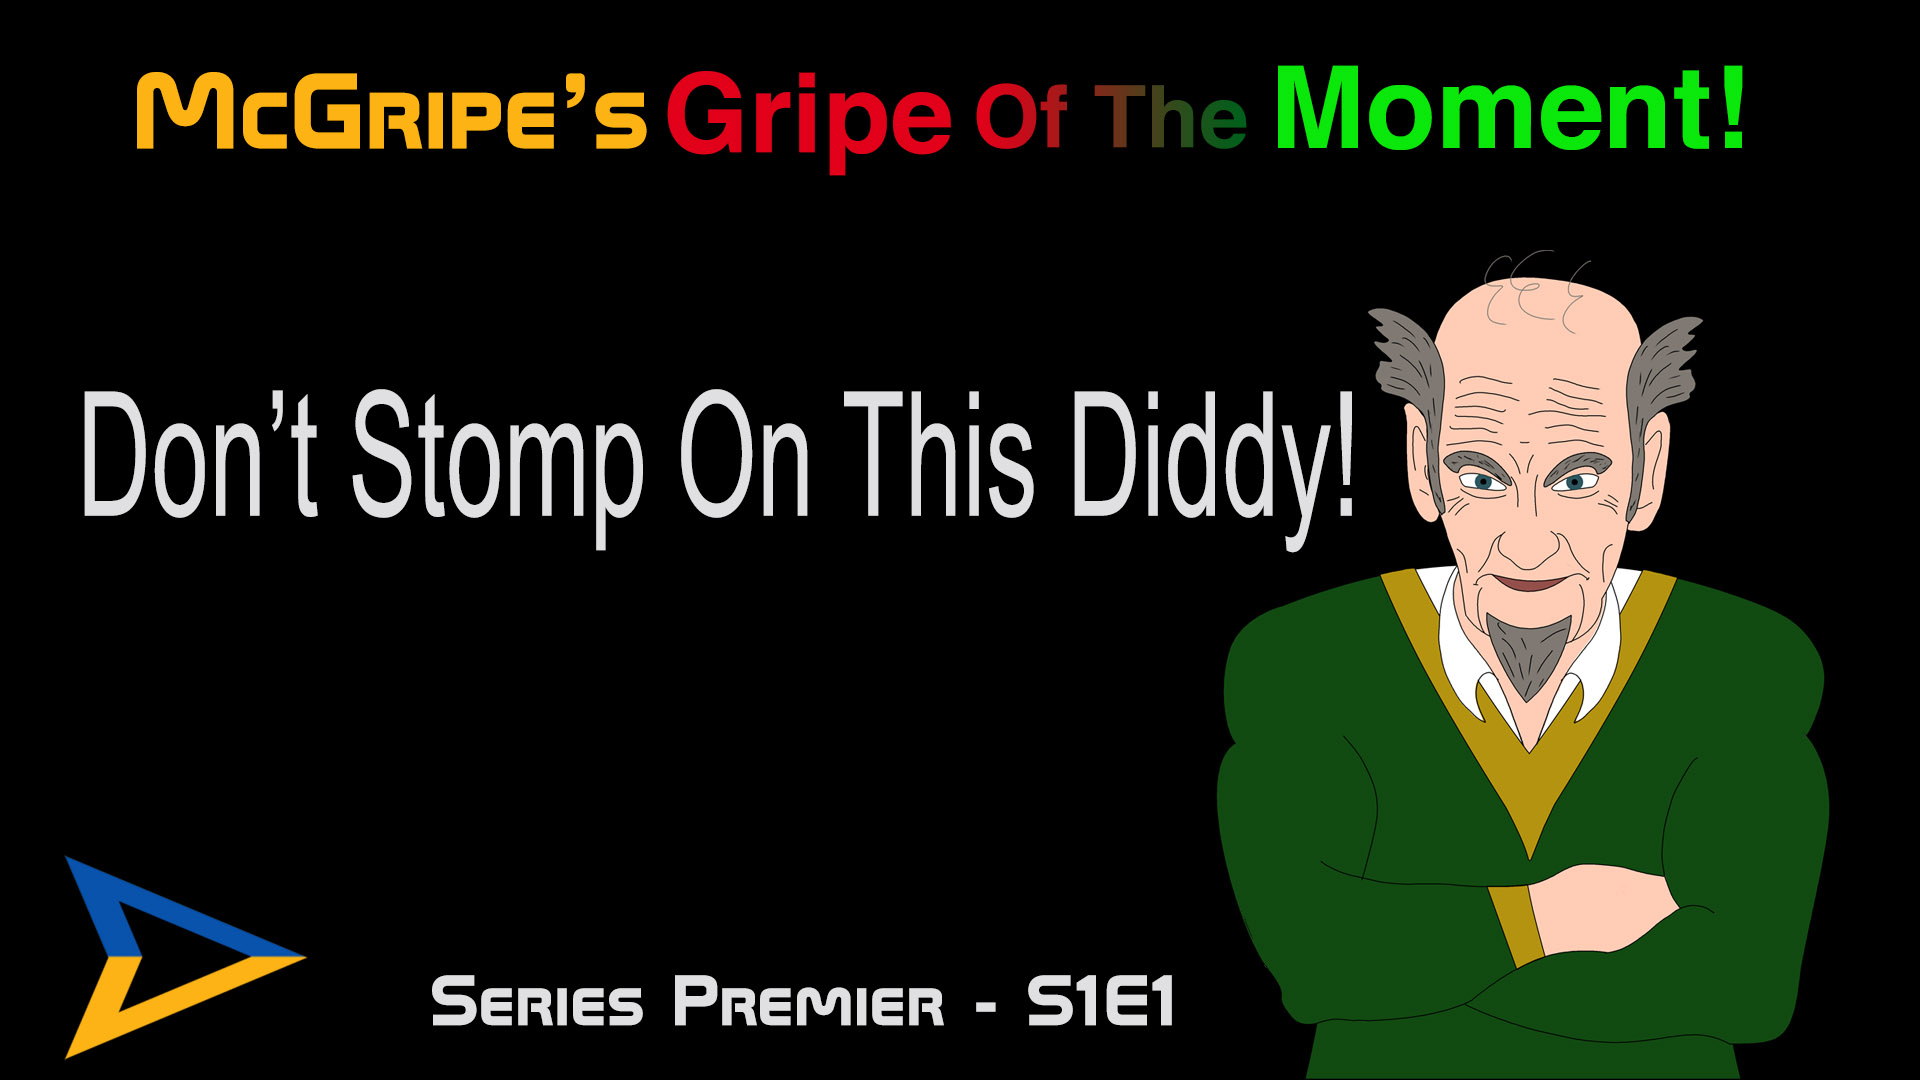 McGripe – Don't Stomp On This Diddy – S1E1